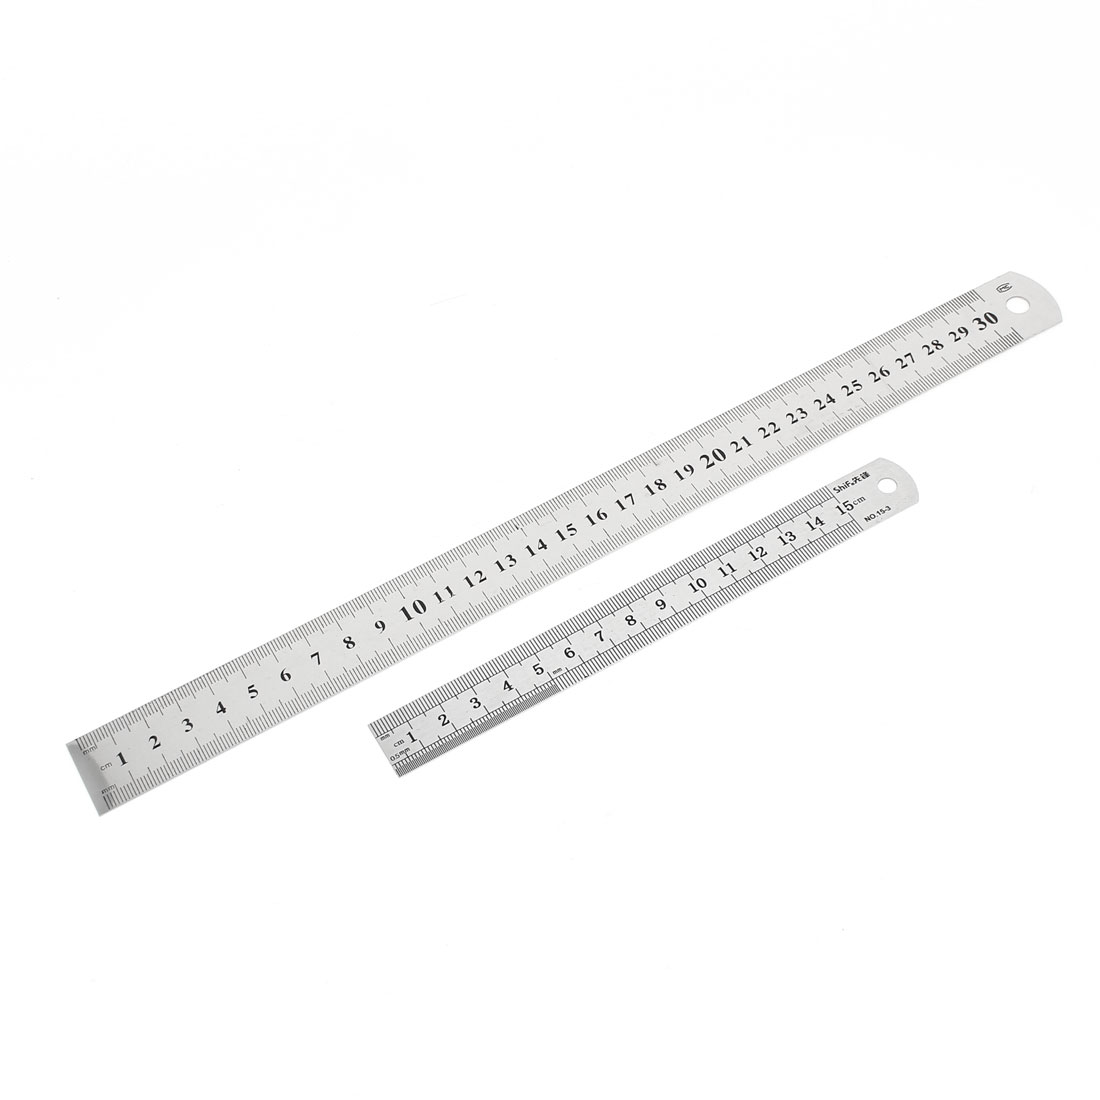 2 in 1 15cm 30cm Double Side Students Metric Straight Ruler Silver Tone